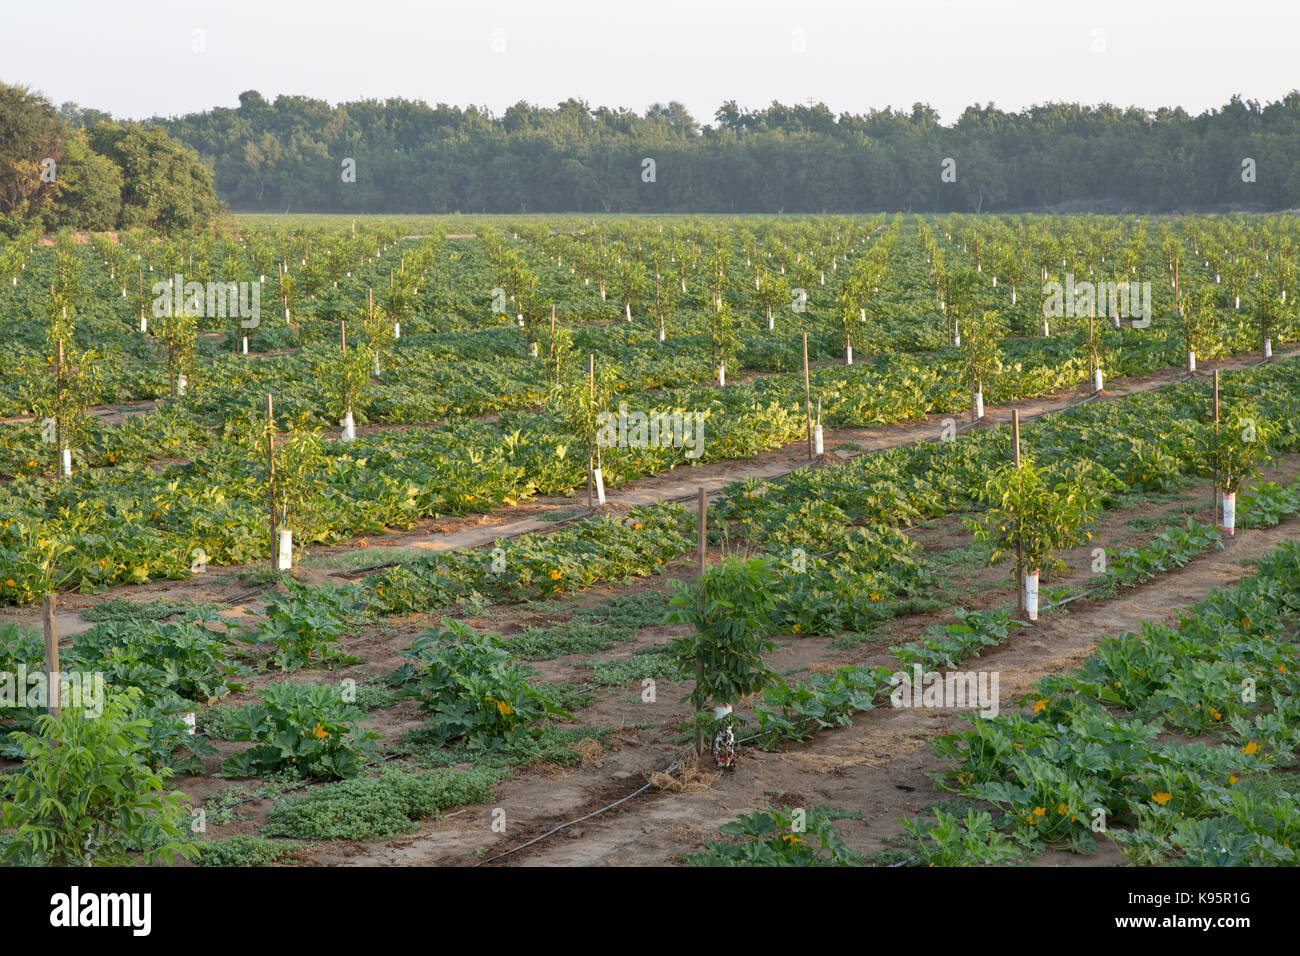 Intercropping,  Young English Walnut orchard, Chandler variety 'Juglans regia'  intercropped with Green - Stock Image